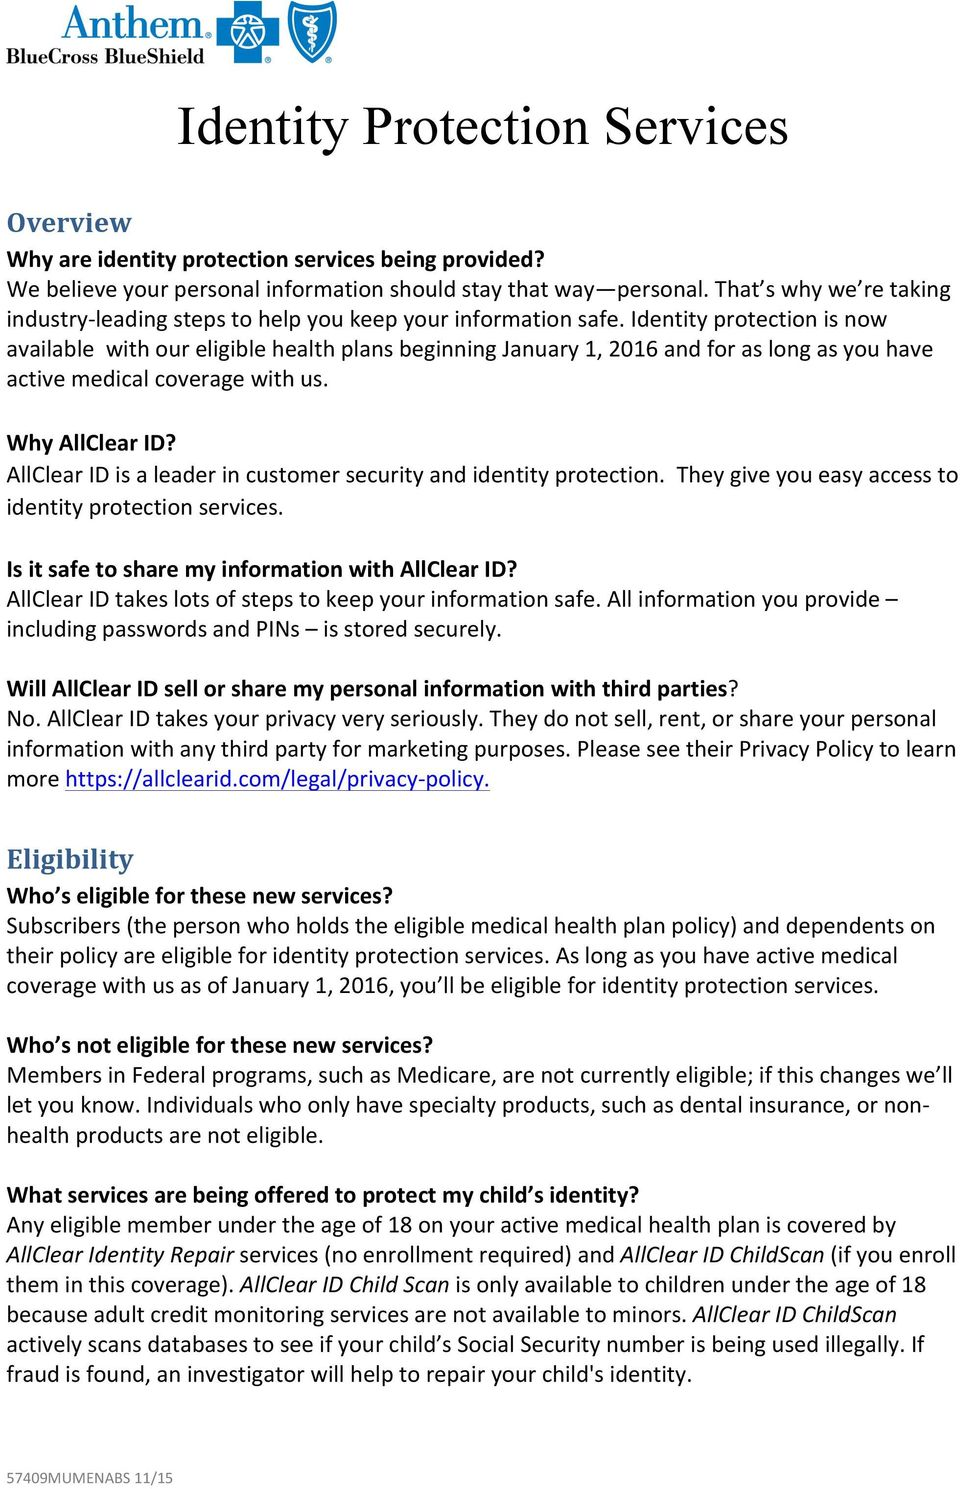 Identity protection is now available with our eligible health plans beginning January 1, 2016 and for as long as you have active medical coverage with us. Why AllClear ID?